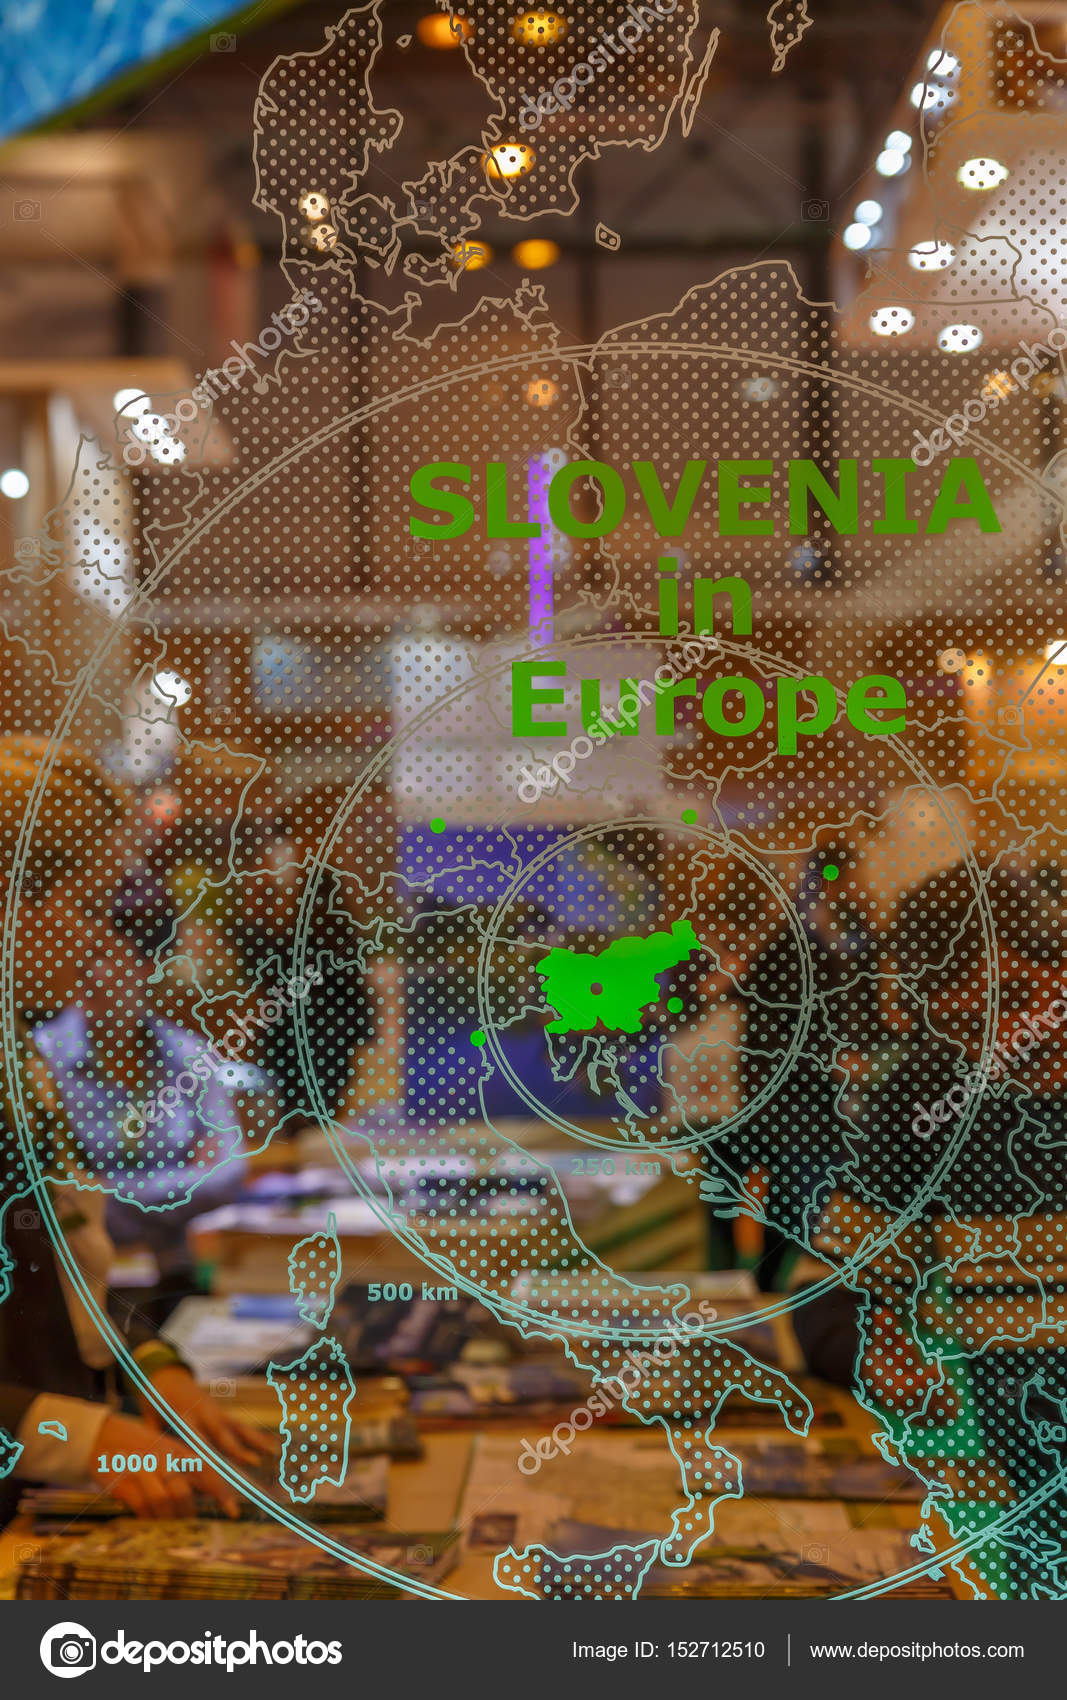 Where Is Slovenia On A Map Of Europe.Transparent Map Of Europe With Indication Of Where Slovenia Is